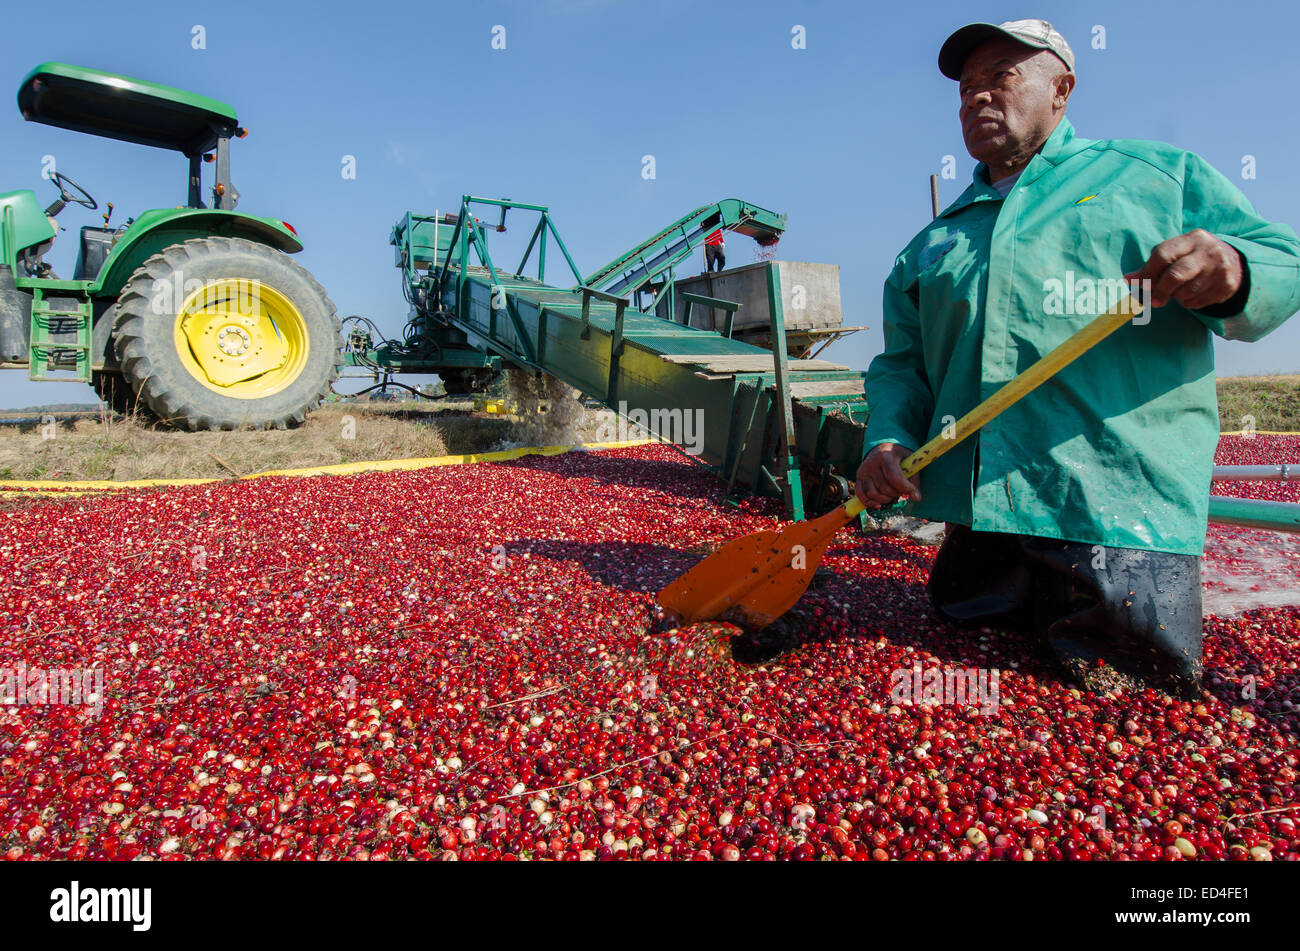 Wading in the bogs, laborers harvest cranberries by pushing the berries up a conveyor belt and into awaiting trucks. - Stock Image